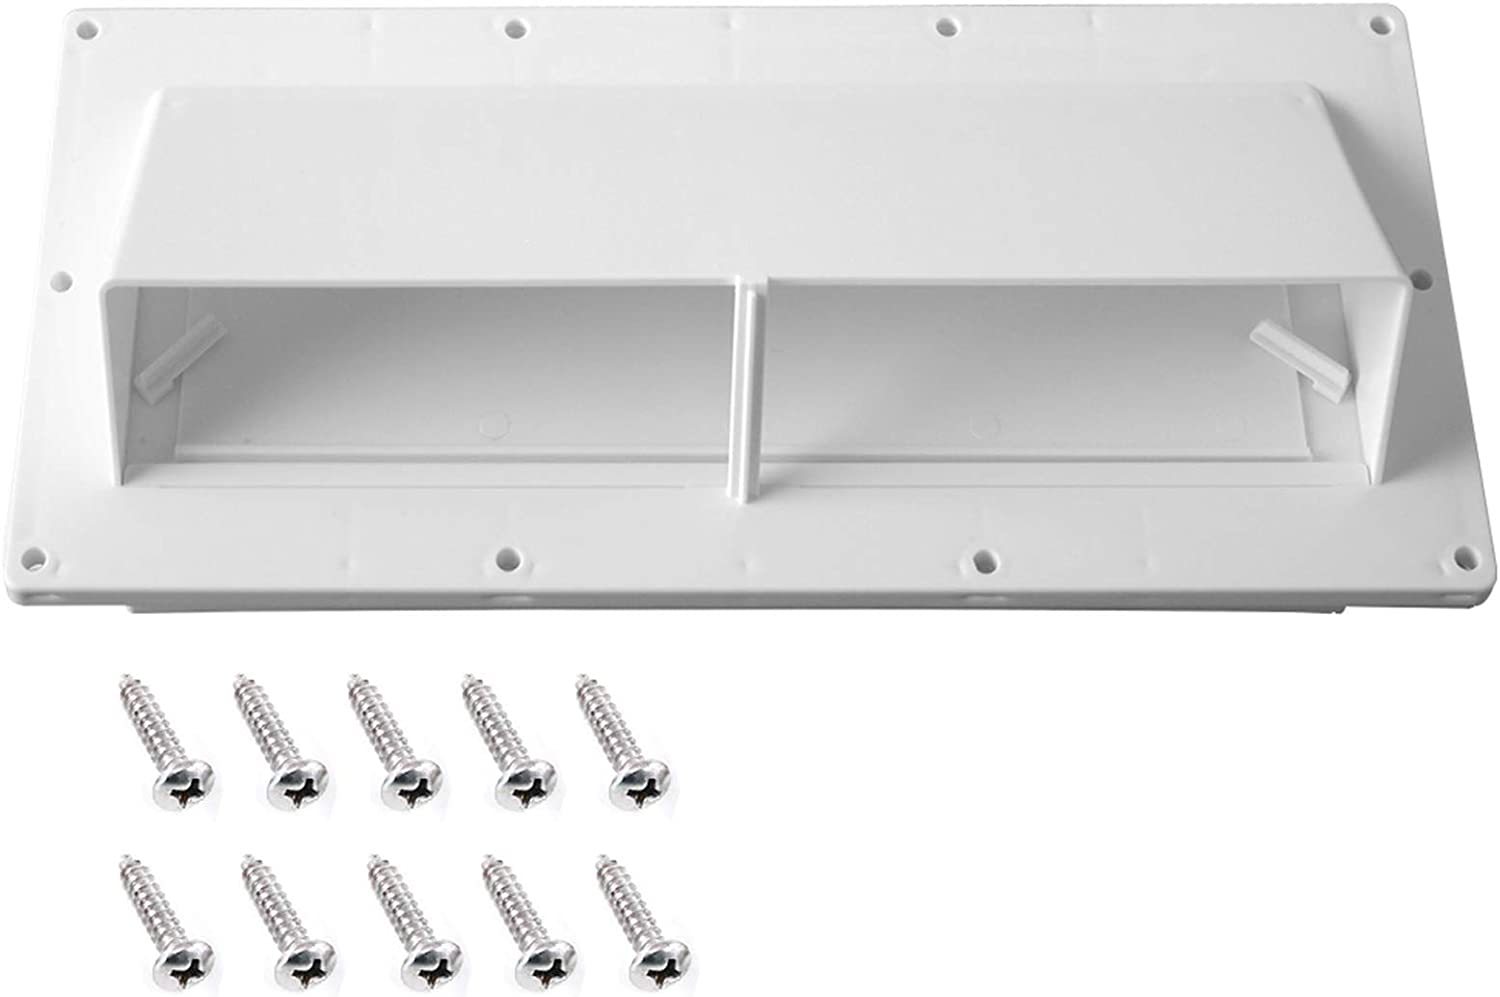 Gekufa RV Range Hood Stove Vent Cover Special price for a limited Free shipping anywhere in the nation time Exhaust